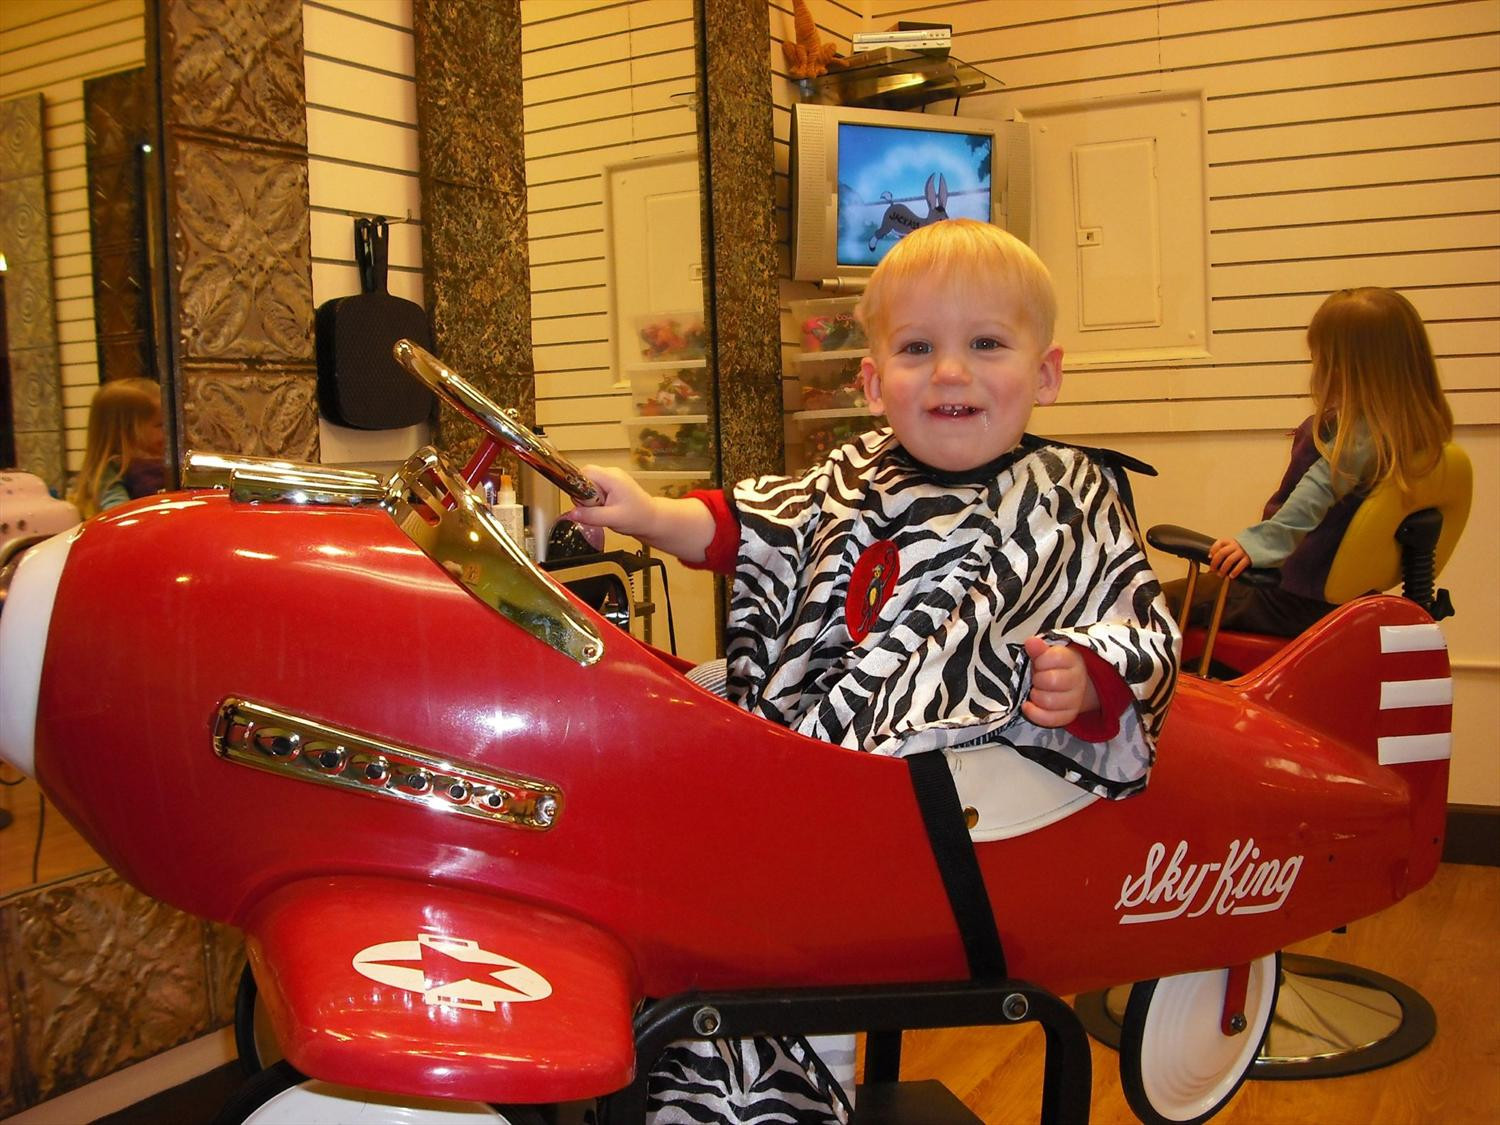 Best ideas about Kids Haircuts Bellevue . Save or Pin Incredible Beauty Salon Following Grand Article Now.